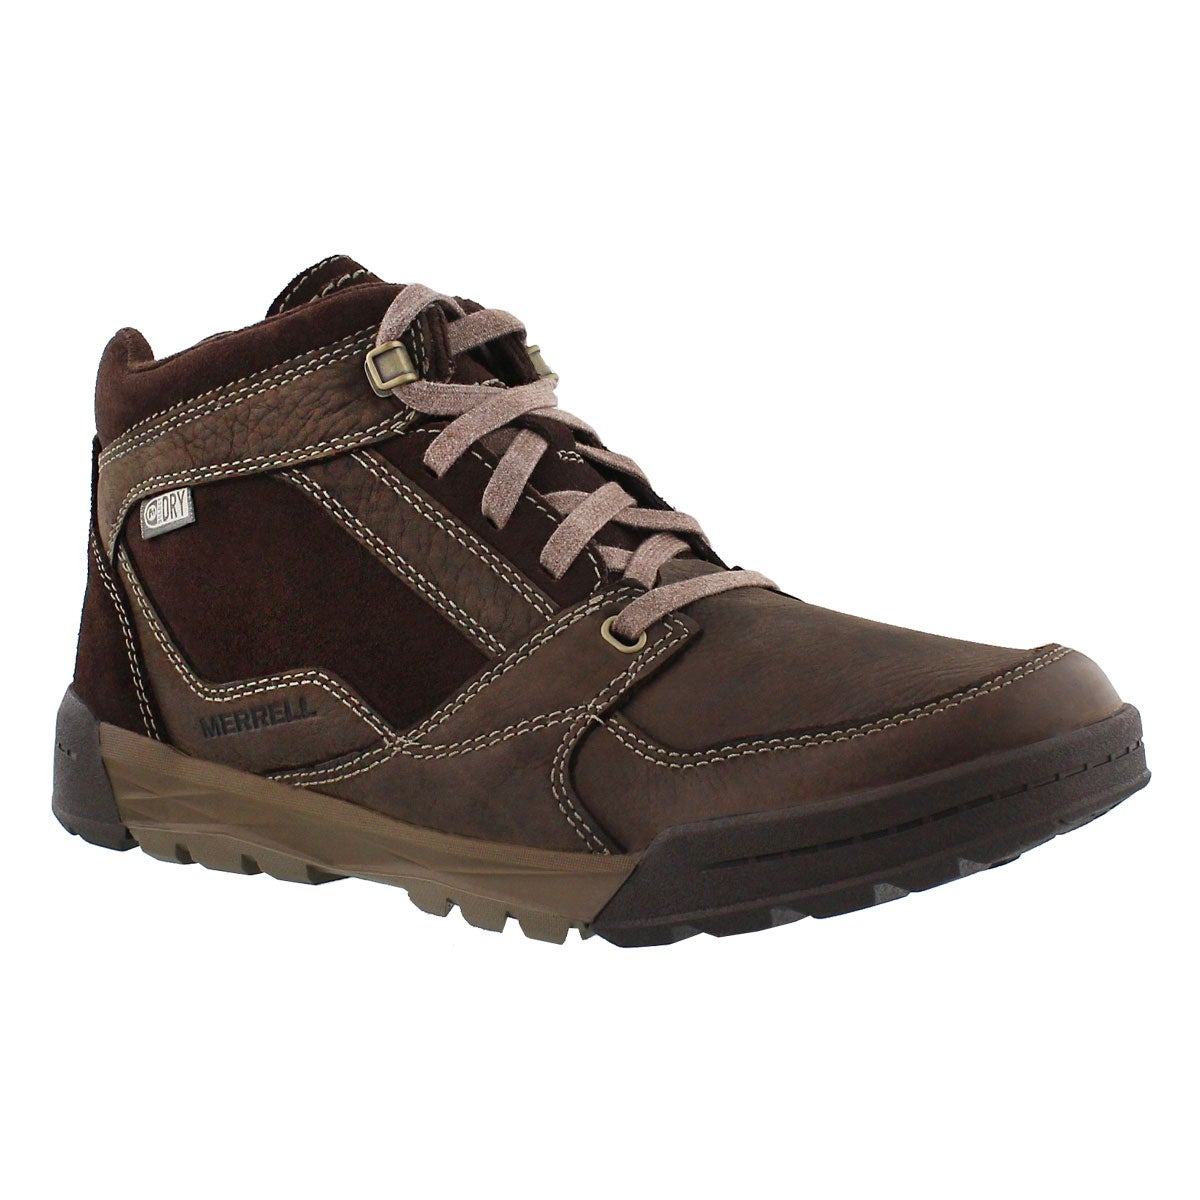 Men's BERNER MID espresso waterproof hiking boots